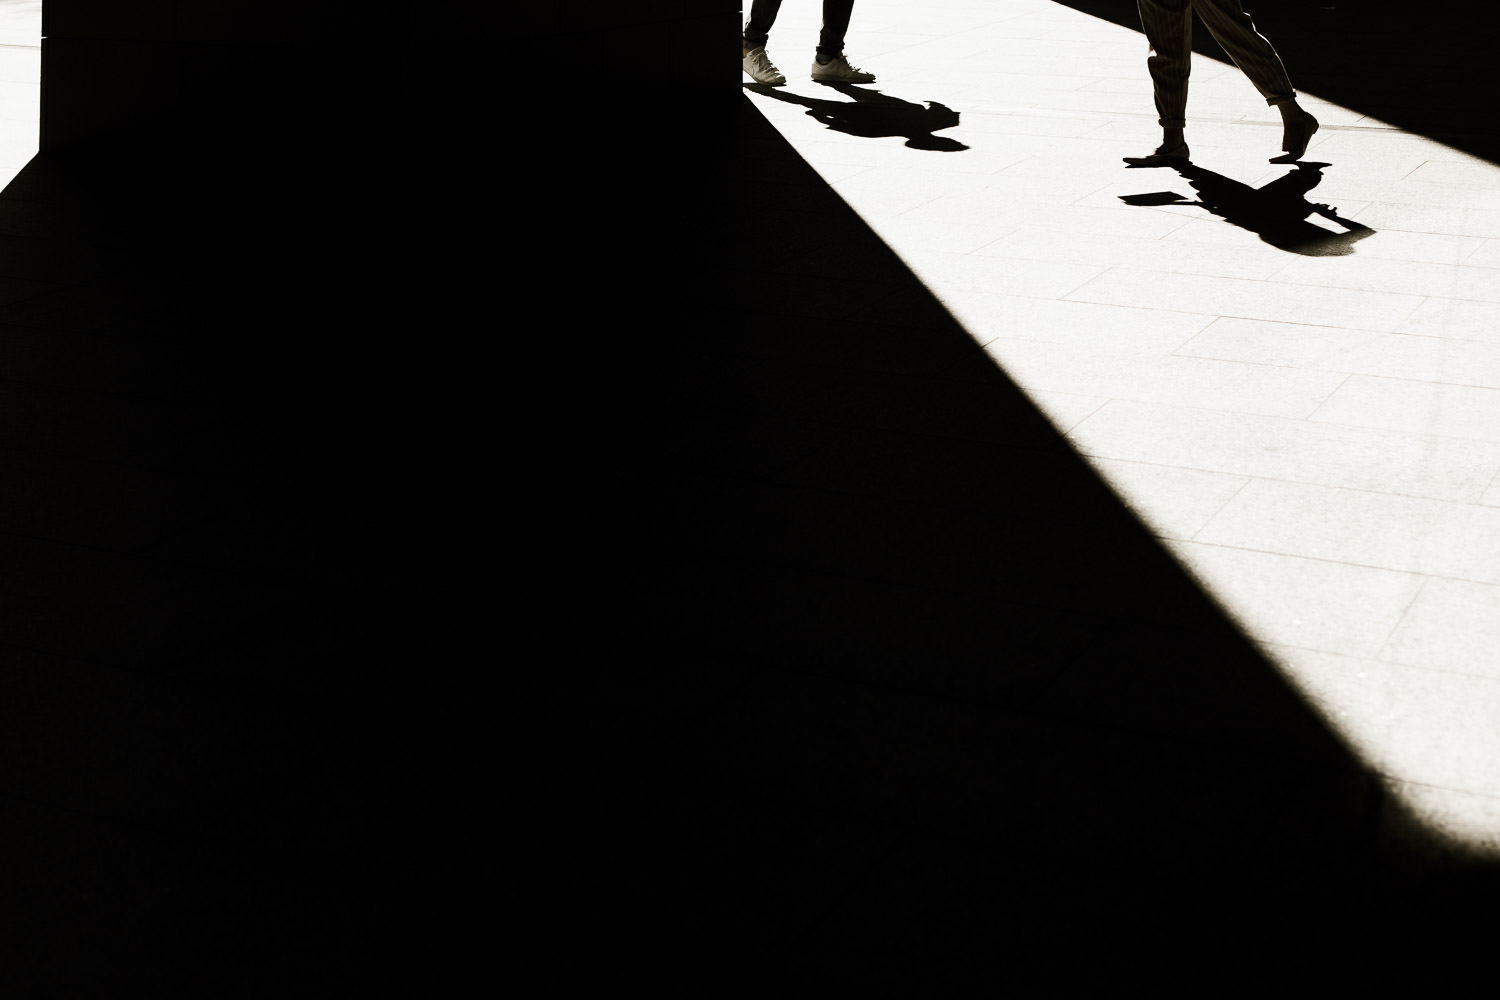 Black and white image of couple and shadows